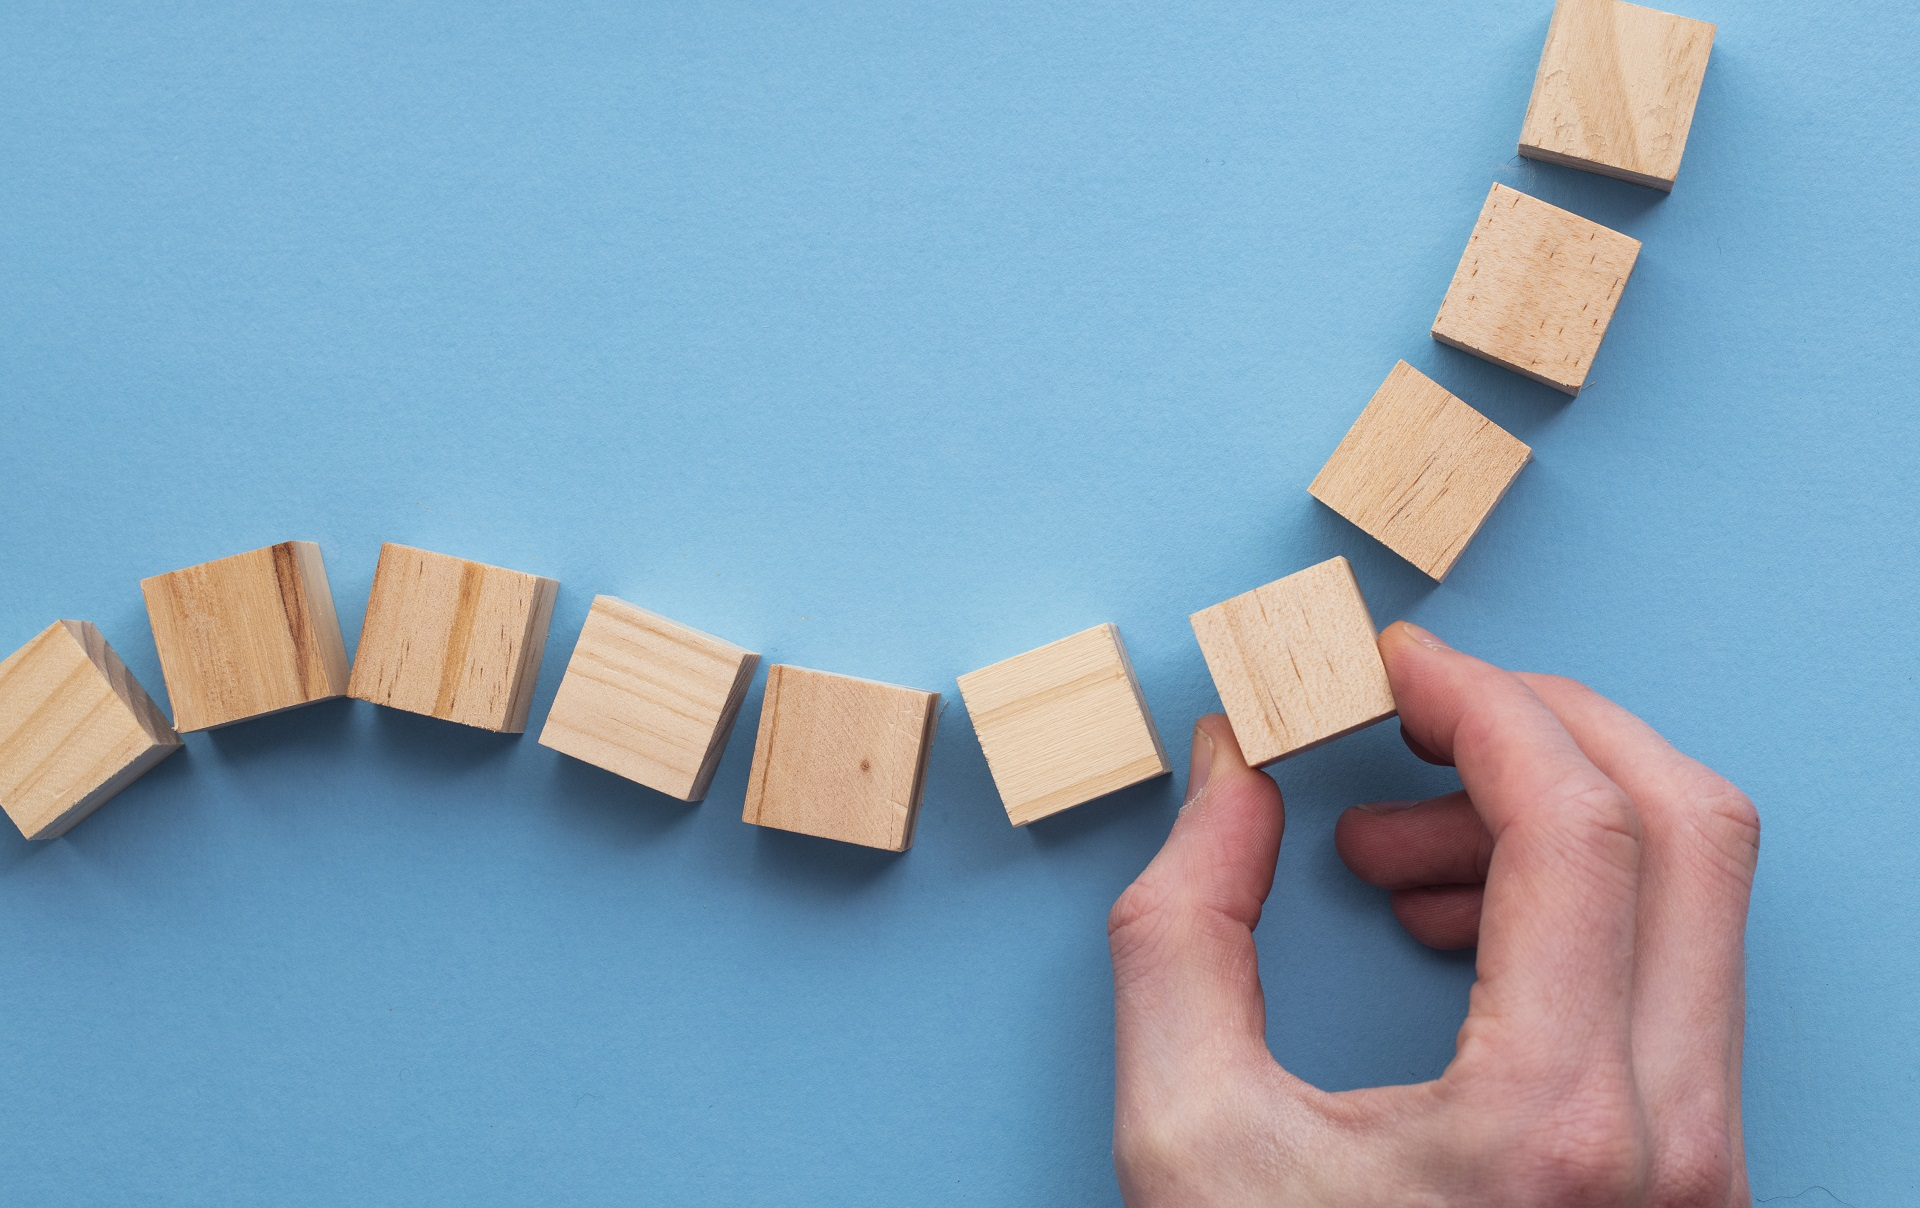 Hand placing wooden blocks in a sequence, representing the customer journey experience